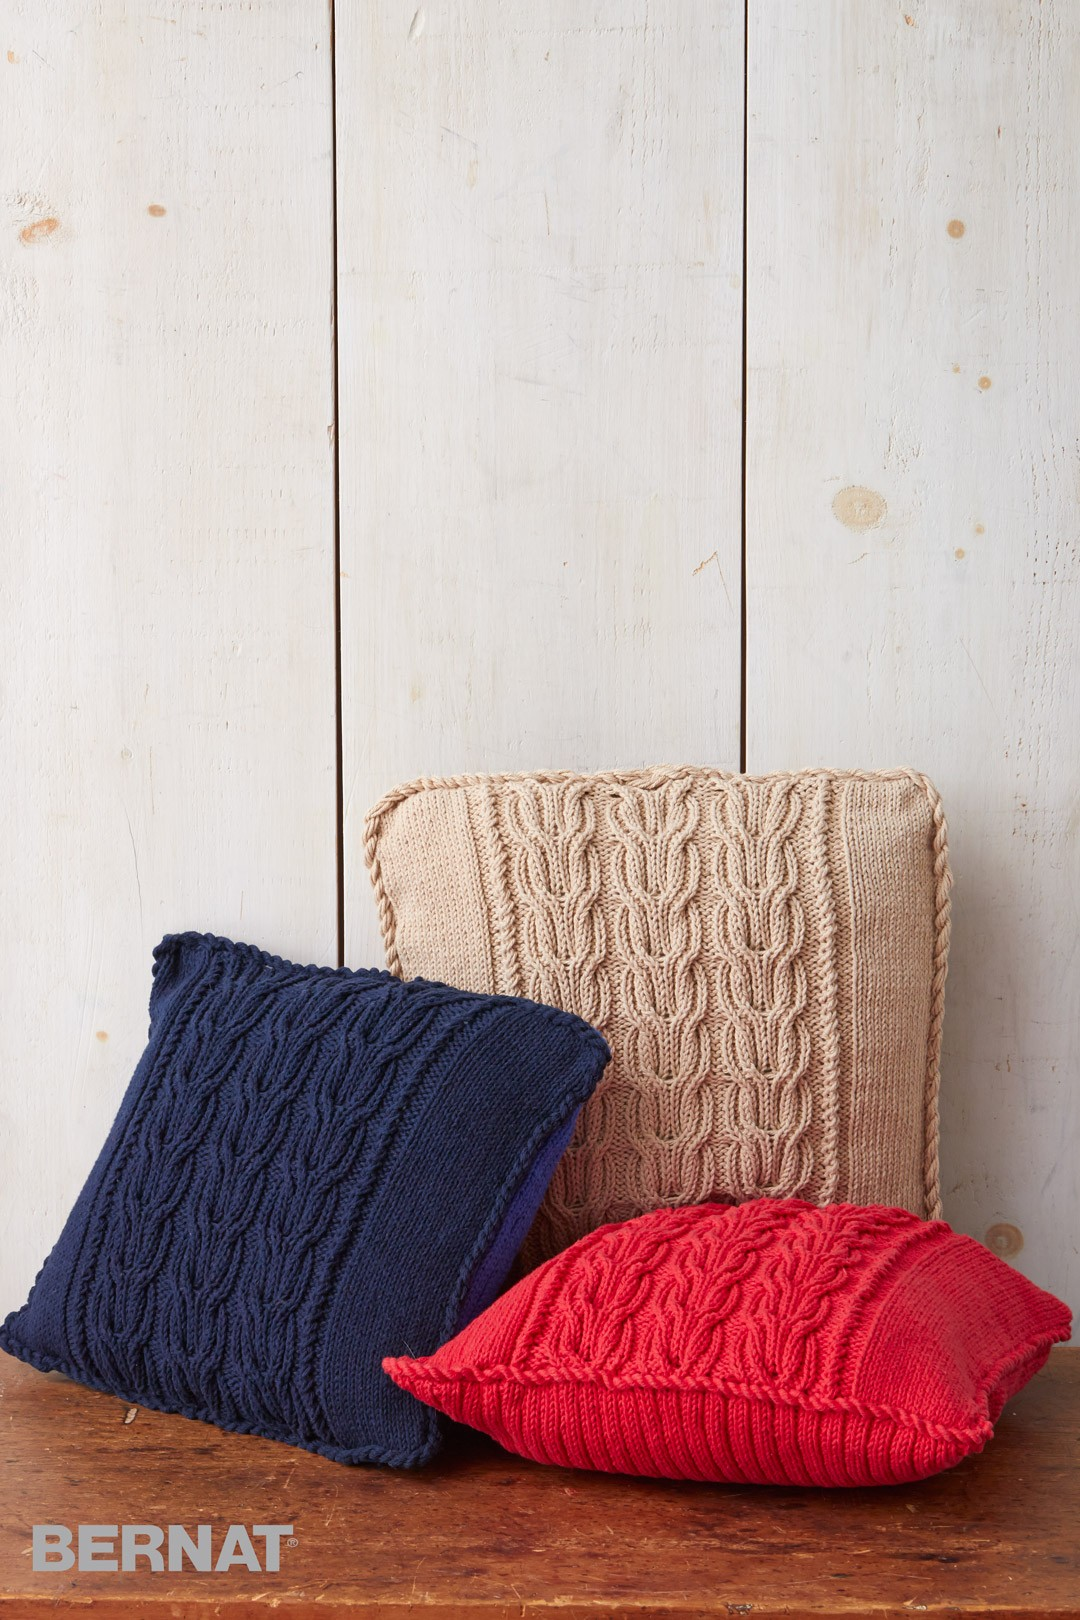 bernat patterns cable knit trio pillows. bernat pydrudo